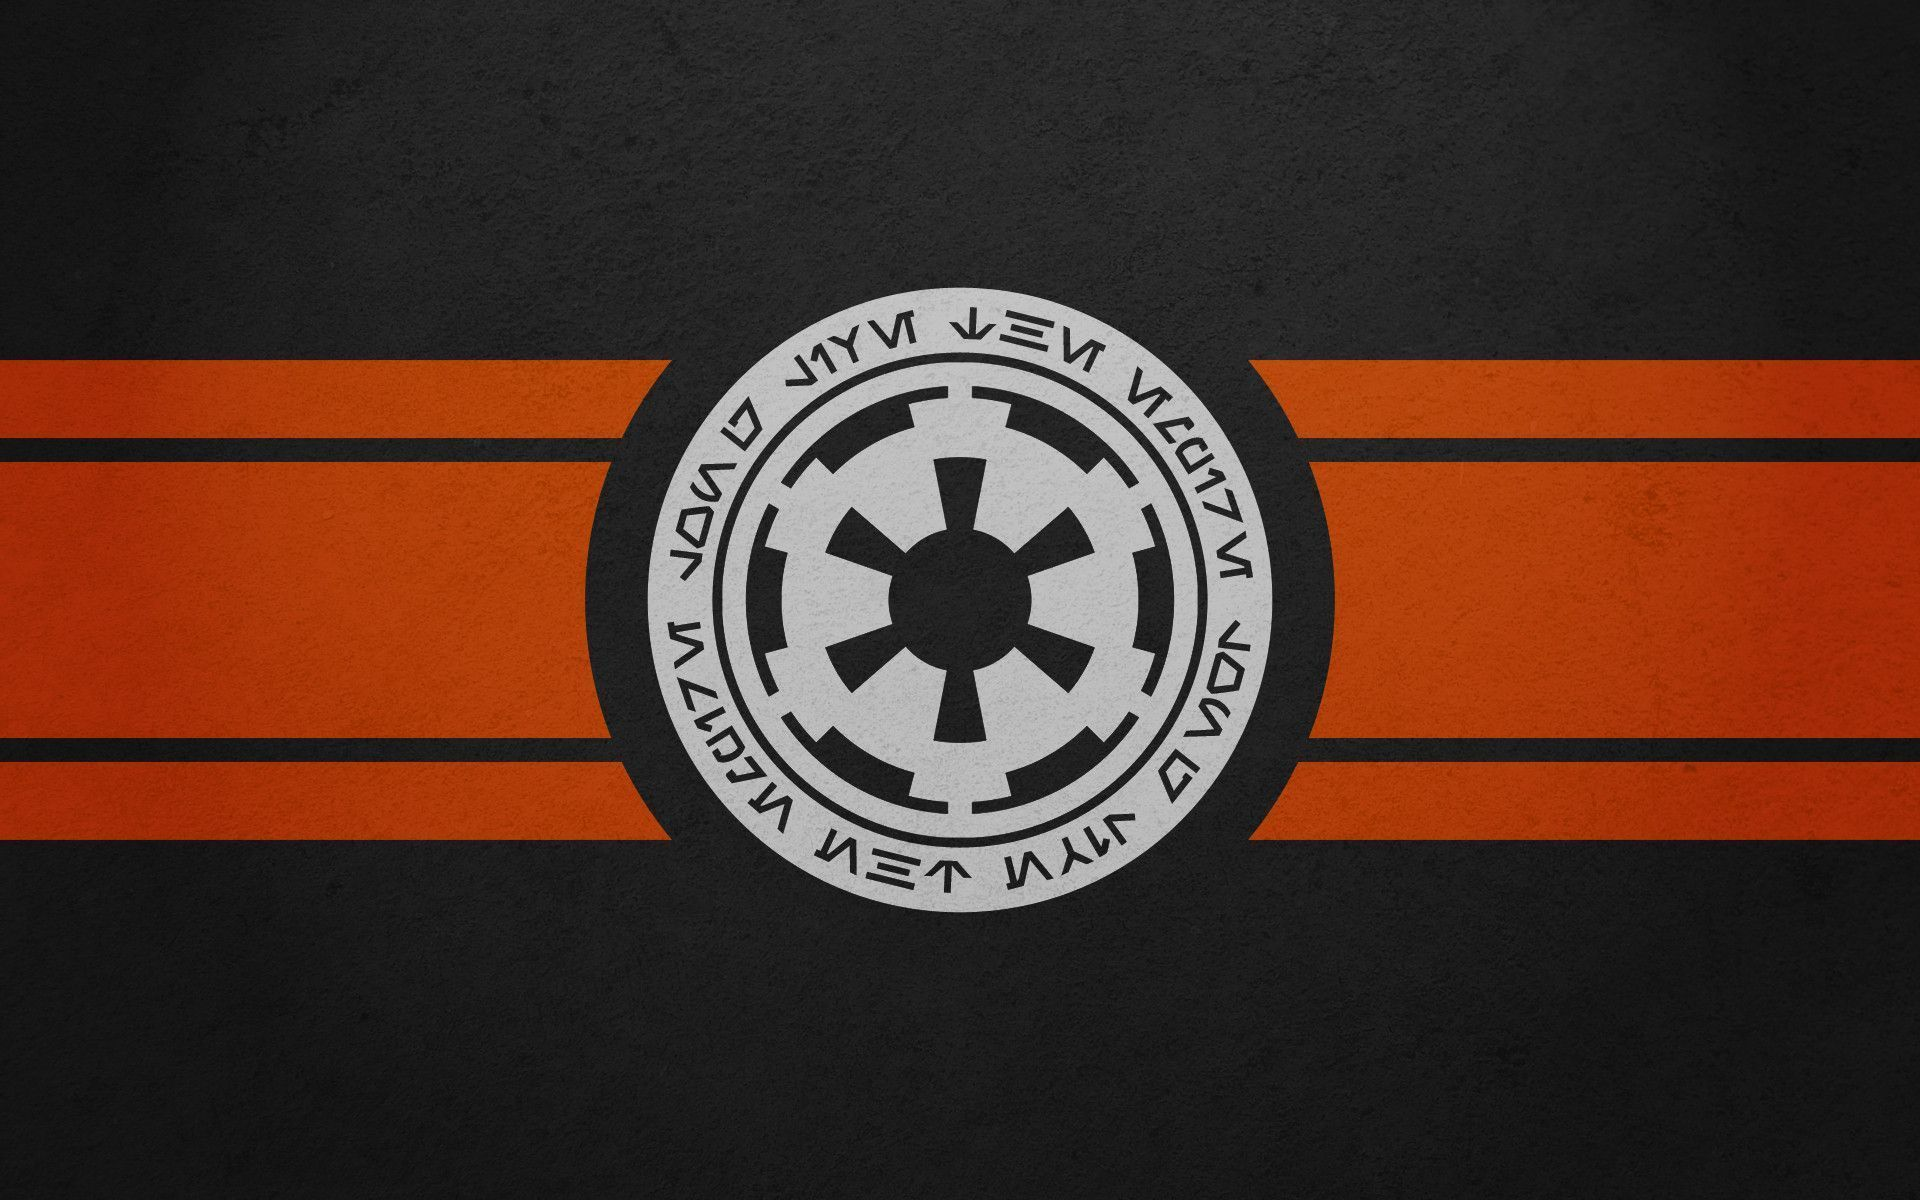 Rebel Alliance Logo Wallpaper Source Star Wars Labzada